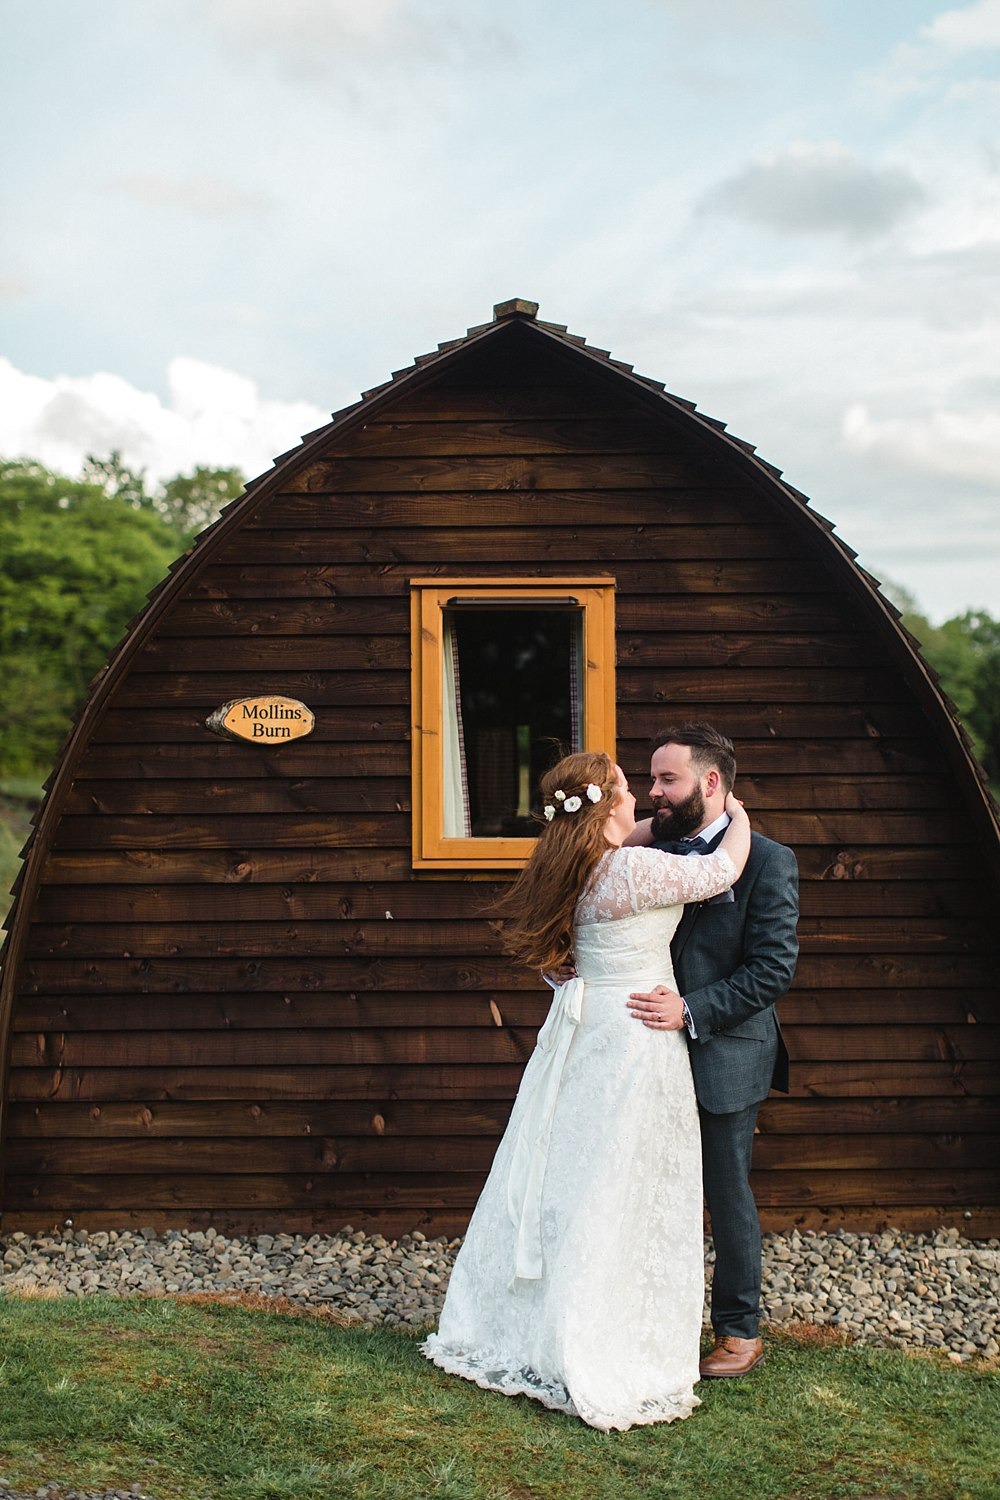 natural romantic fun wedding Eden Leisure Village Scotland highlights 27-27.jpg